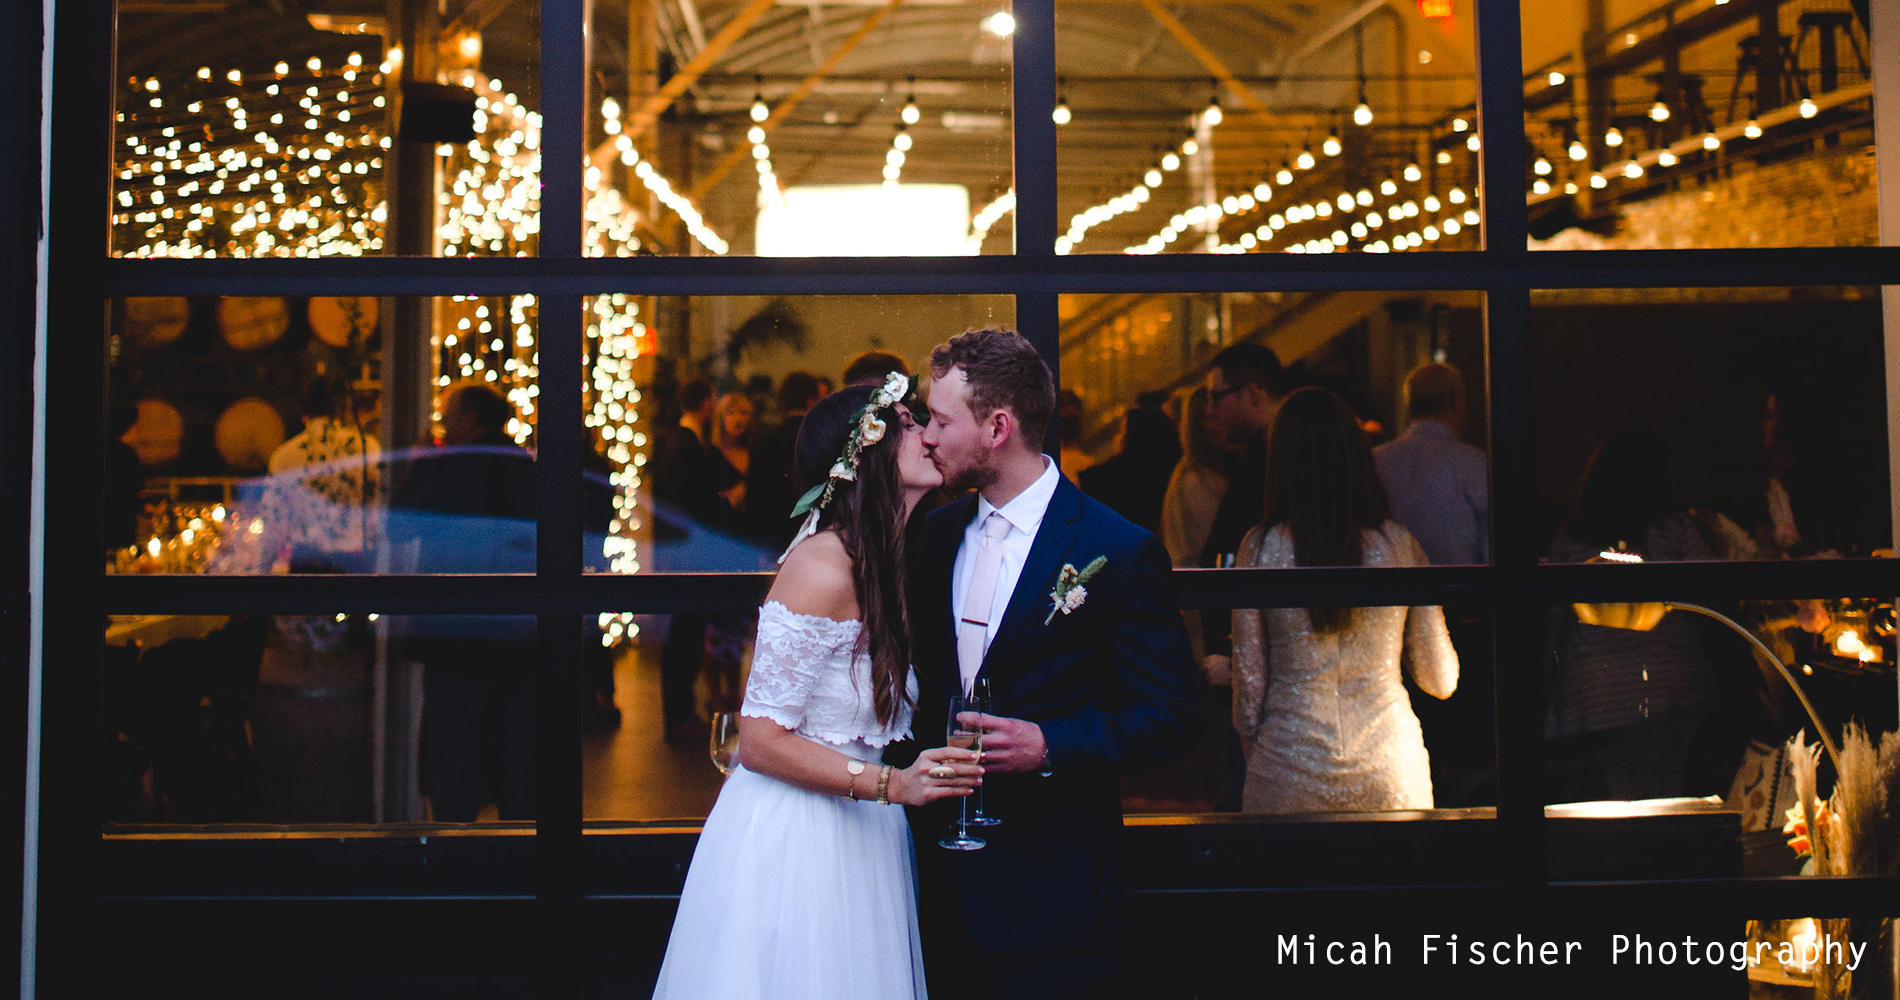 Micah Fischer Photography Weddings Wedding Events Design Wedding Cake Corporate Business Meeting Sales Training Event Marketing Oregon Portland Adventure Winery Taproom Event-Space Dinner Party Restaurant.jpg